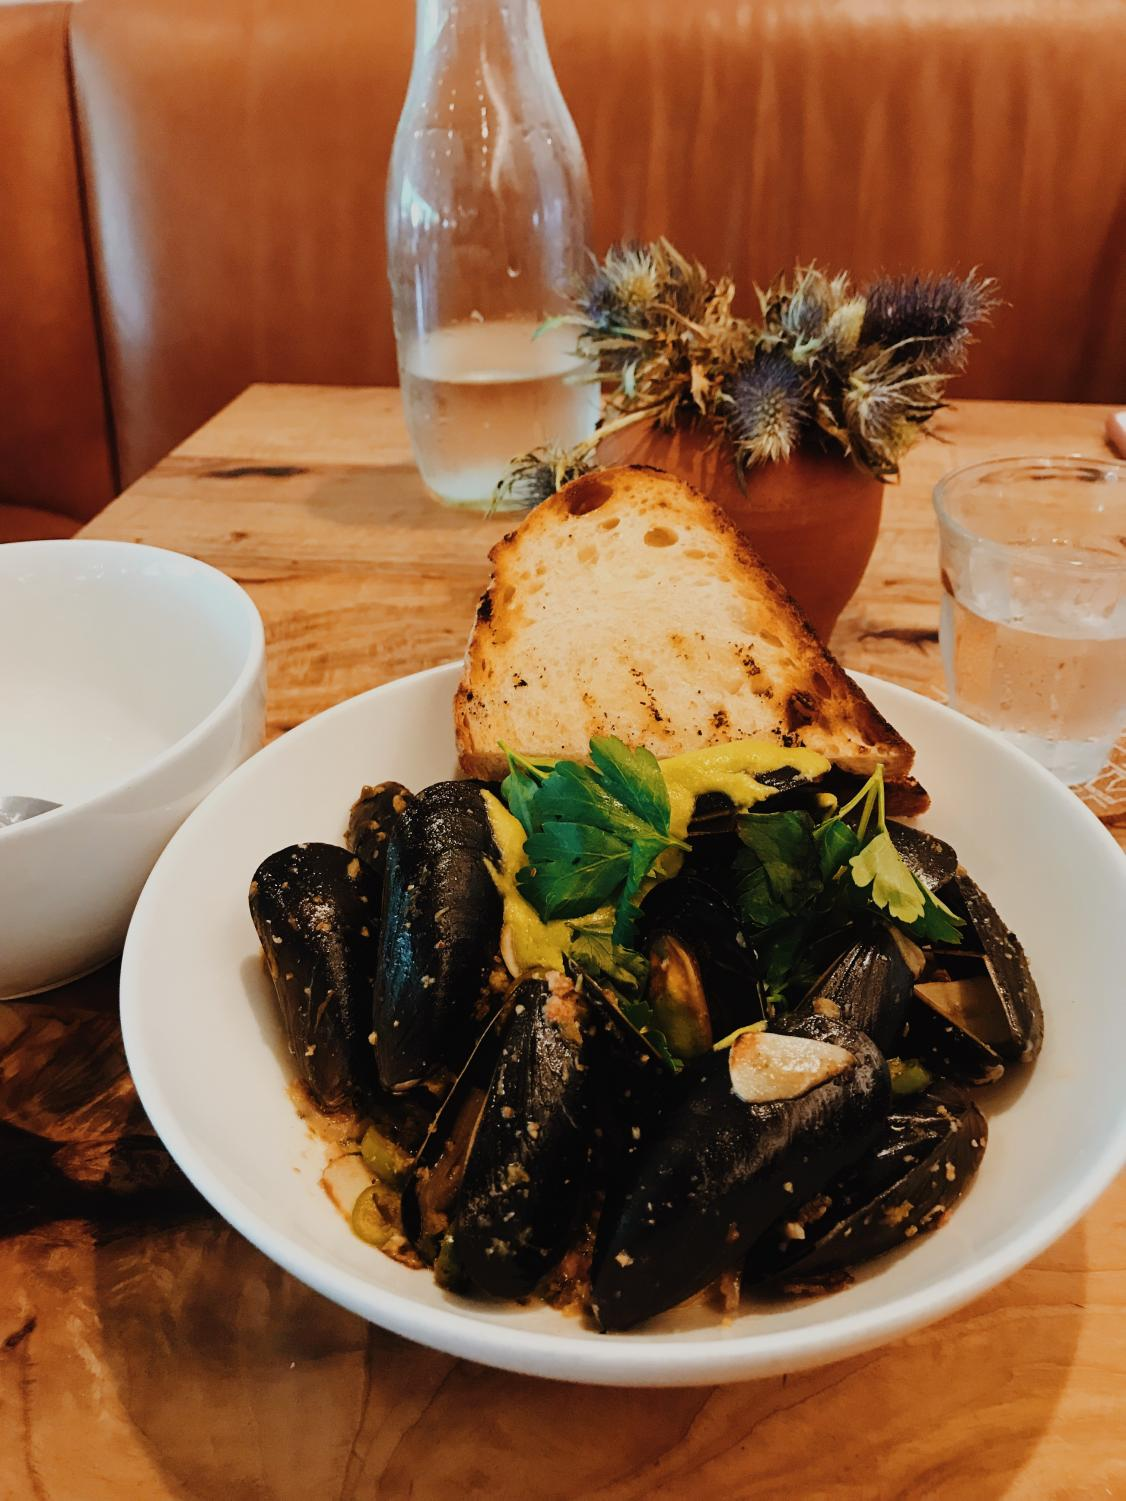 The+delectable+Pei+Mussels+are+a+treat+to+eat.